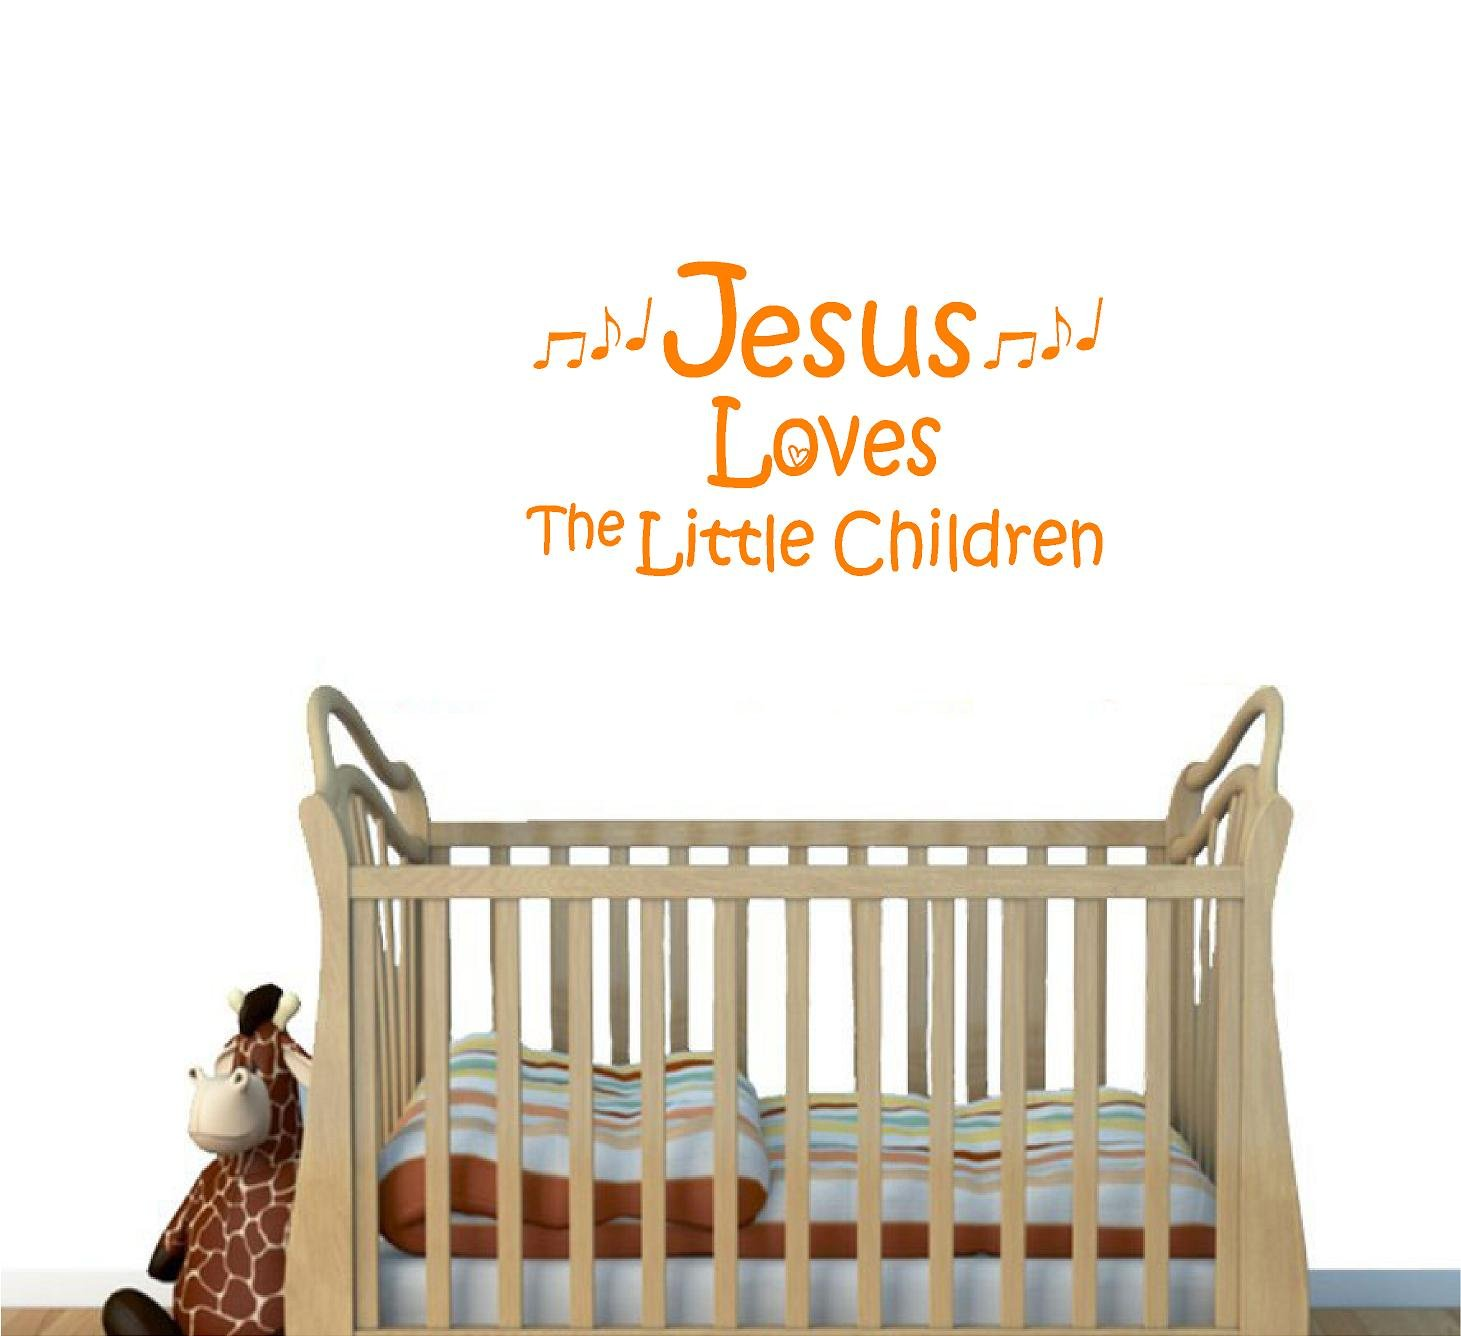 Jeyfel Decals: Vinyl Wall Decor Decal Sticker. Christian. Jesus Loves the Little Children (Orange 22''W X 12'' H)